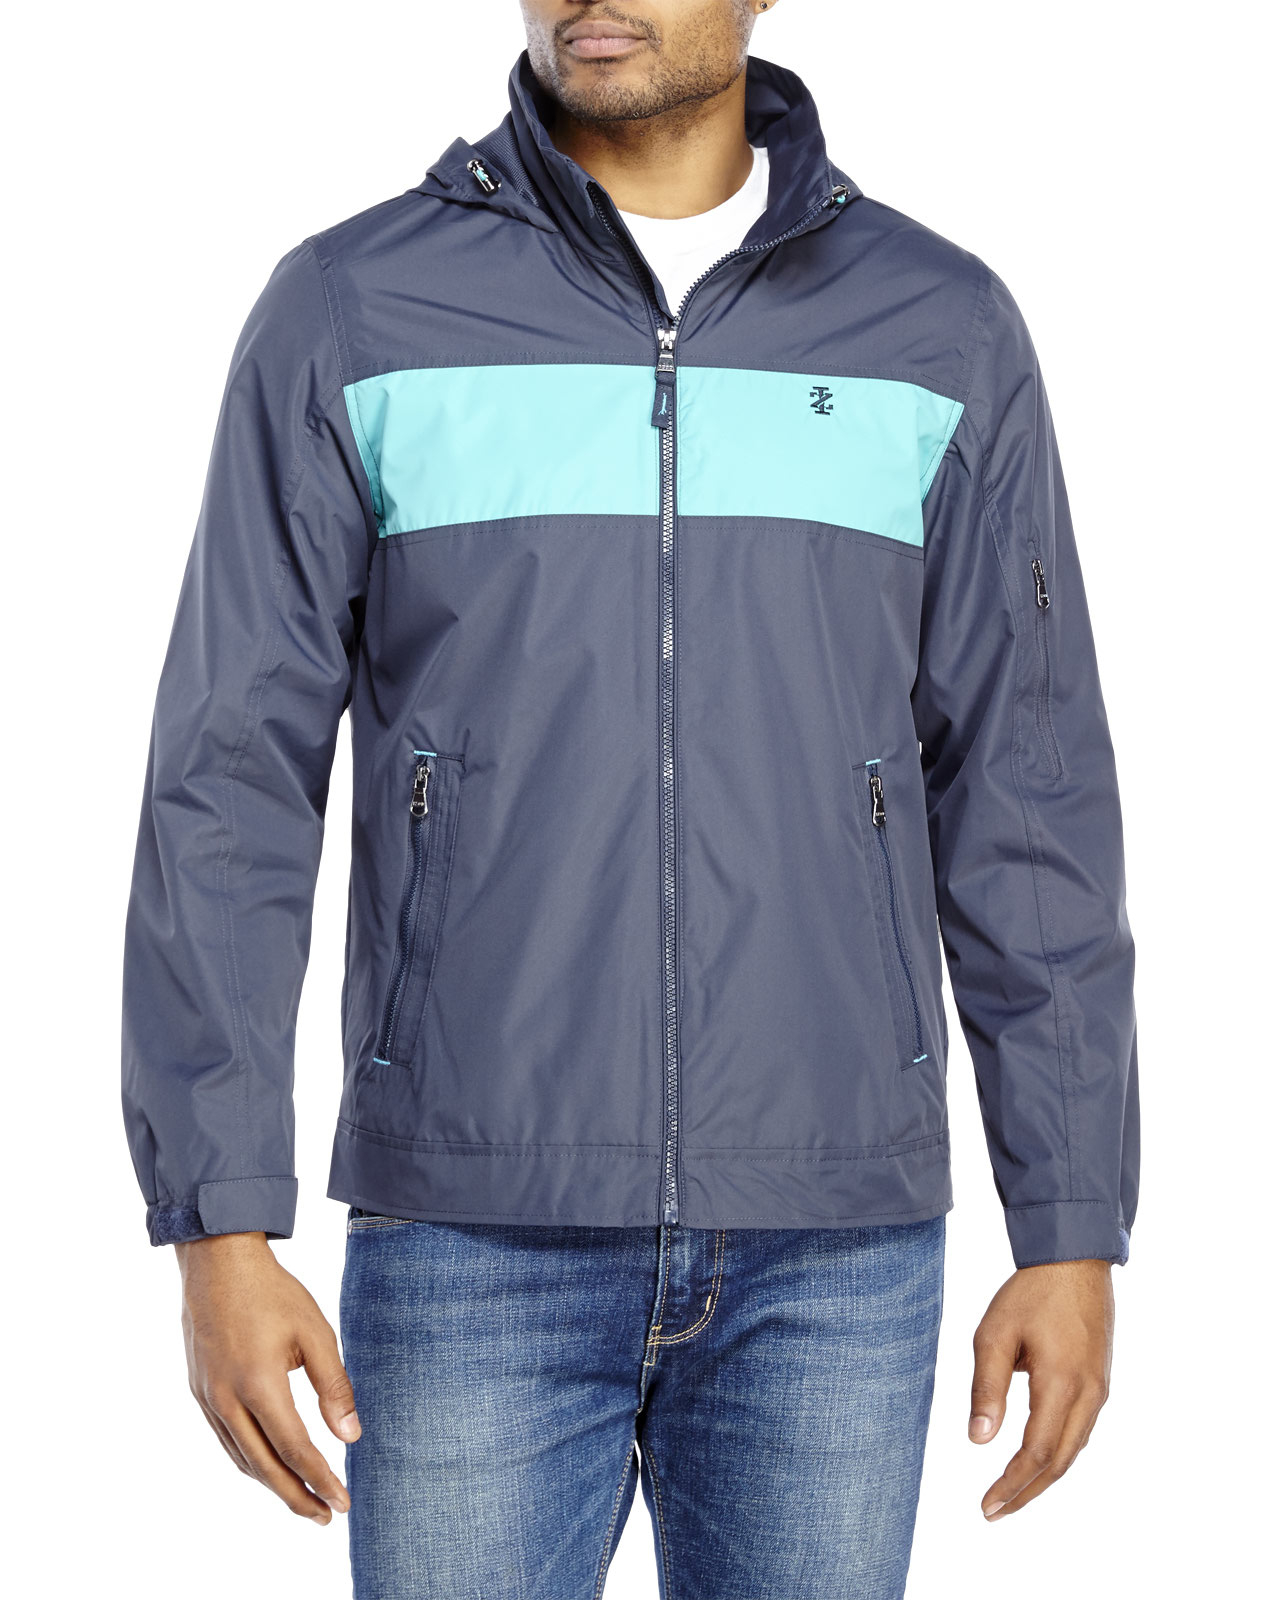 Images of Mens Windbreaker Jacket With Hood - The Fashions Of Paradise